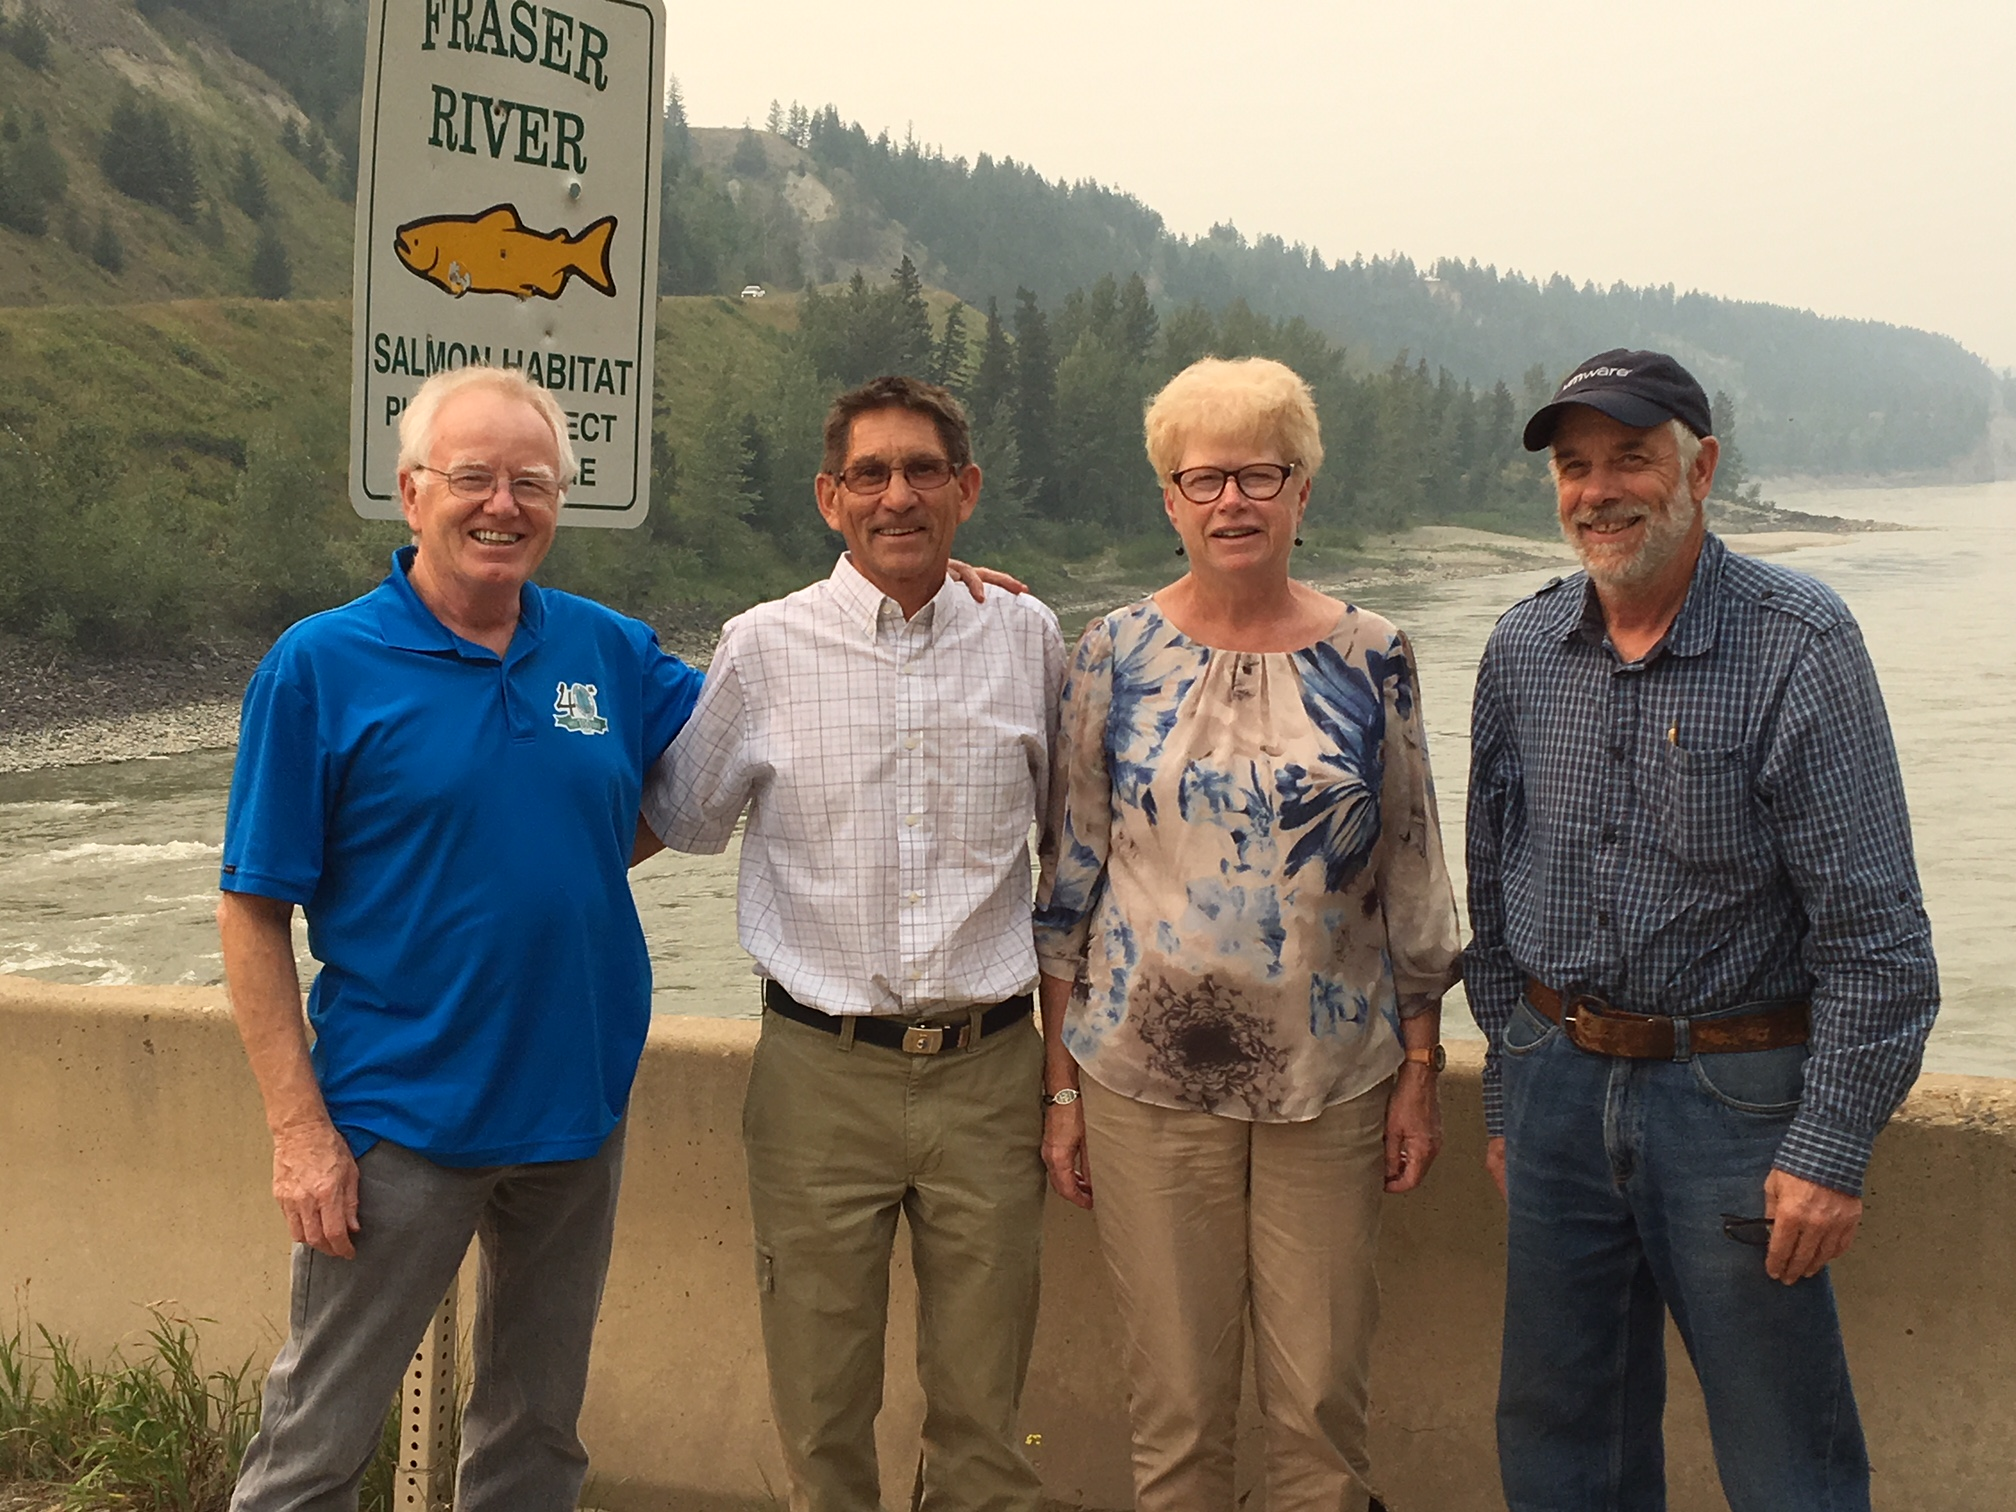 (left to right) Brian LaPointe, Danny Moxey, Sue Moxey and Bill Watt near where the fire jumped the Fraser River in 2017.